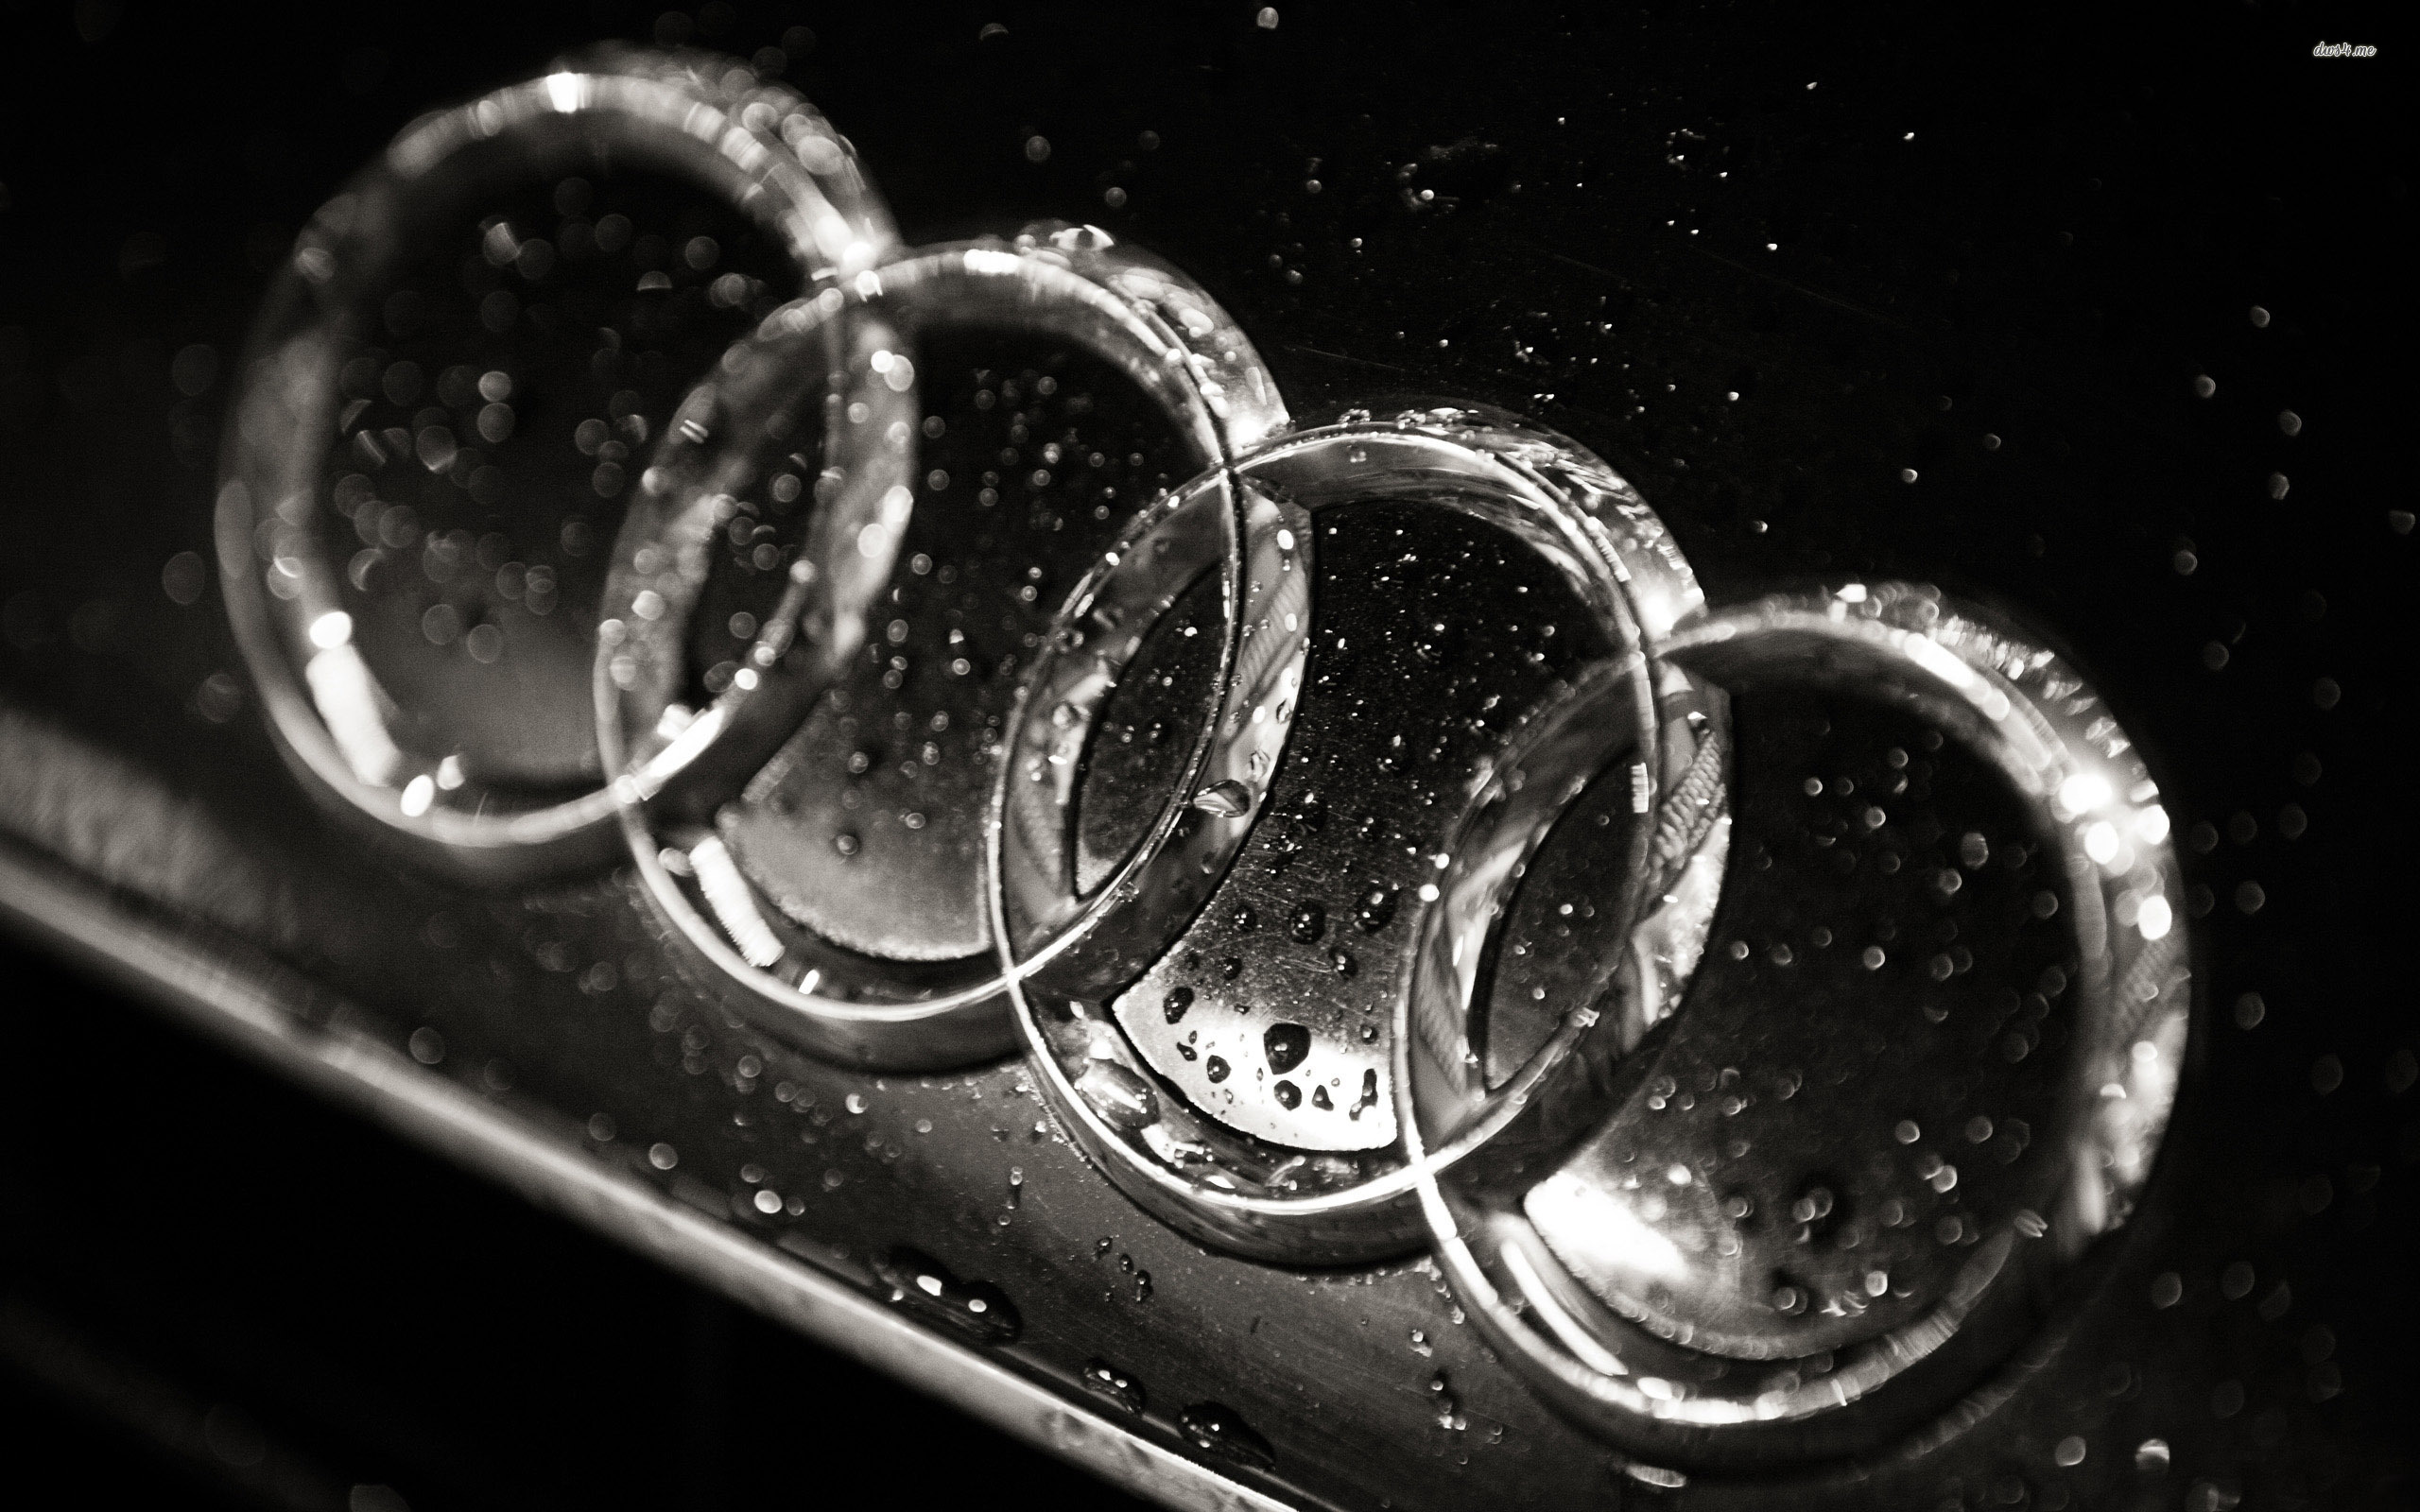 2560x1600 Wet Audi logo, cars